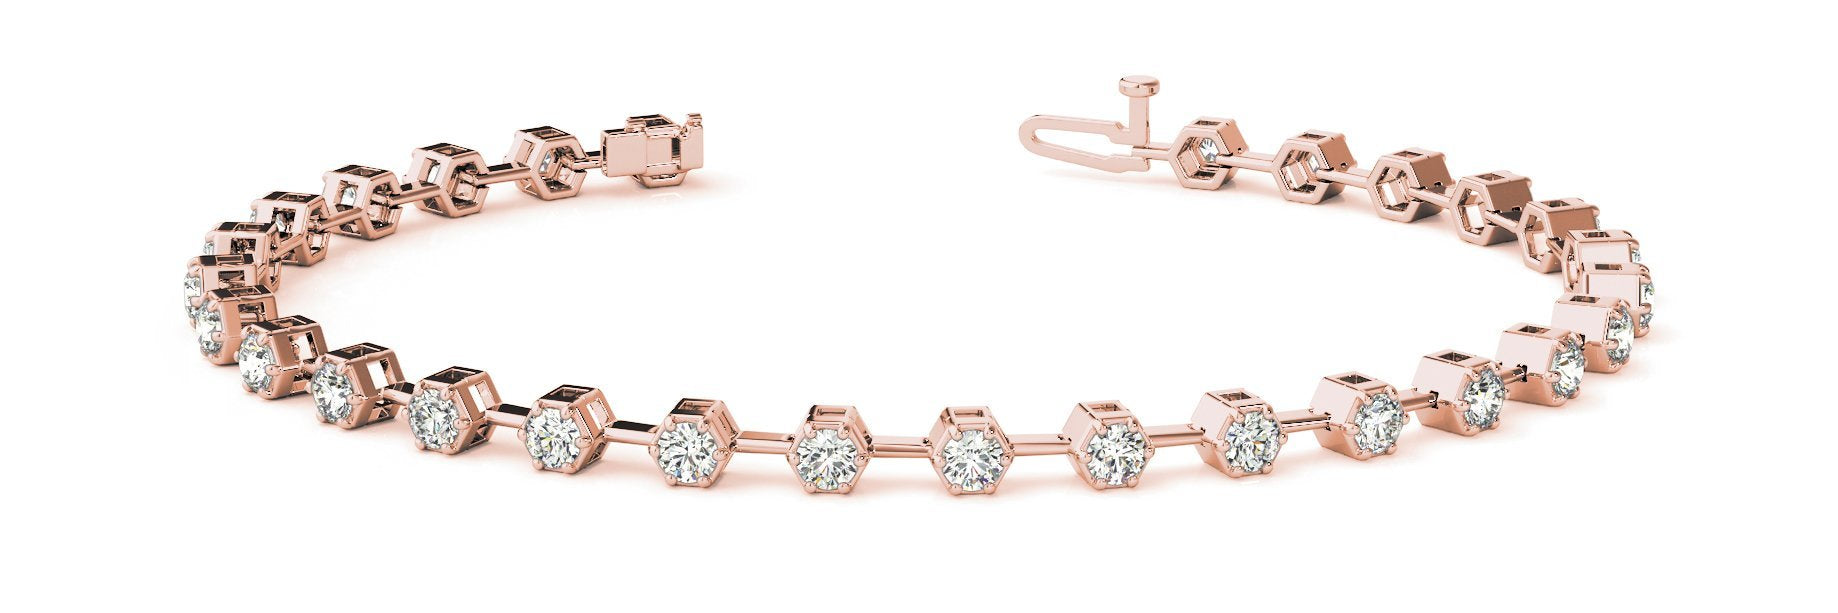 Fancy Diamond Bracelet Ladies 3.34ct tw - 14kt Rose Gold